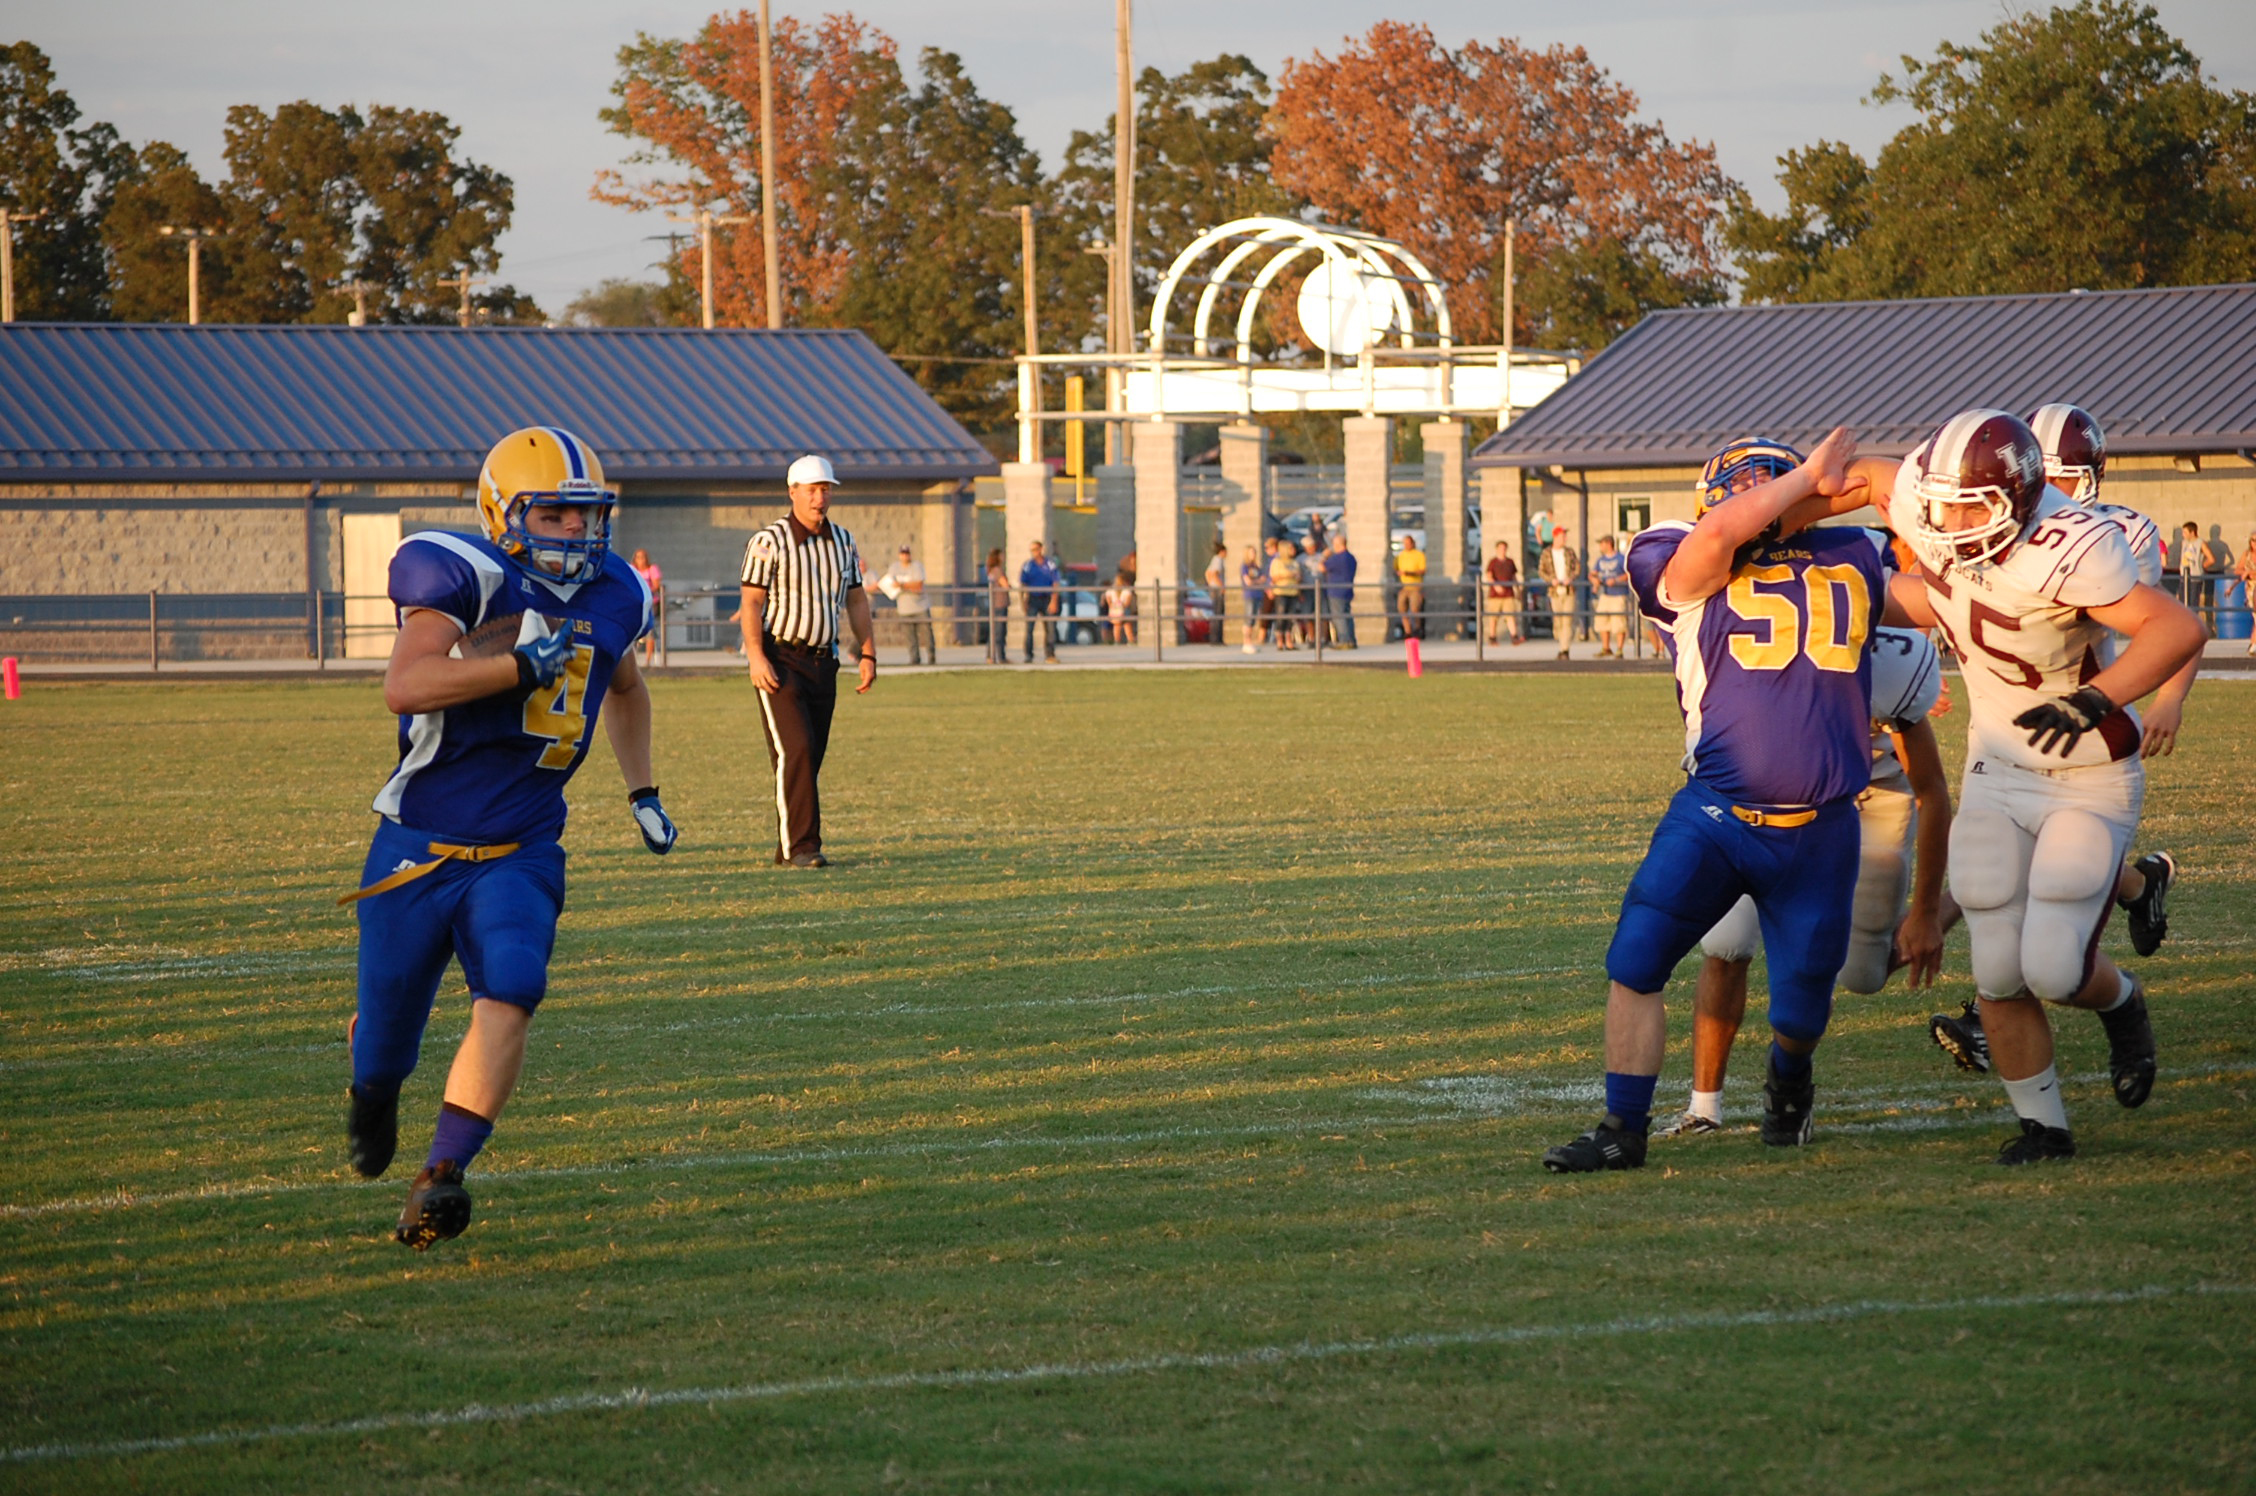 Colton Akers carried for 100 yards last Friday night, including this good gainer around the right side.